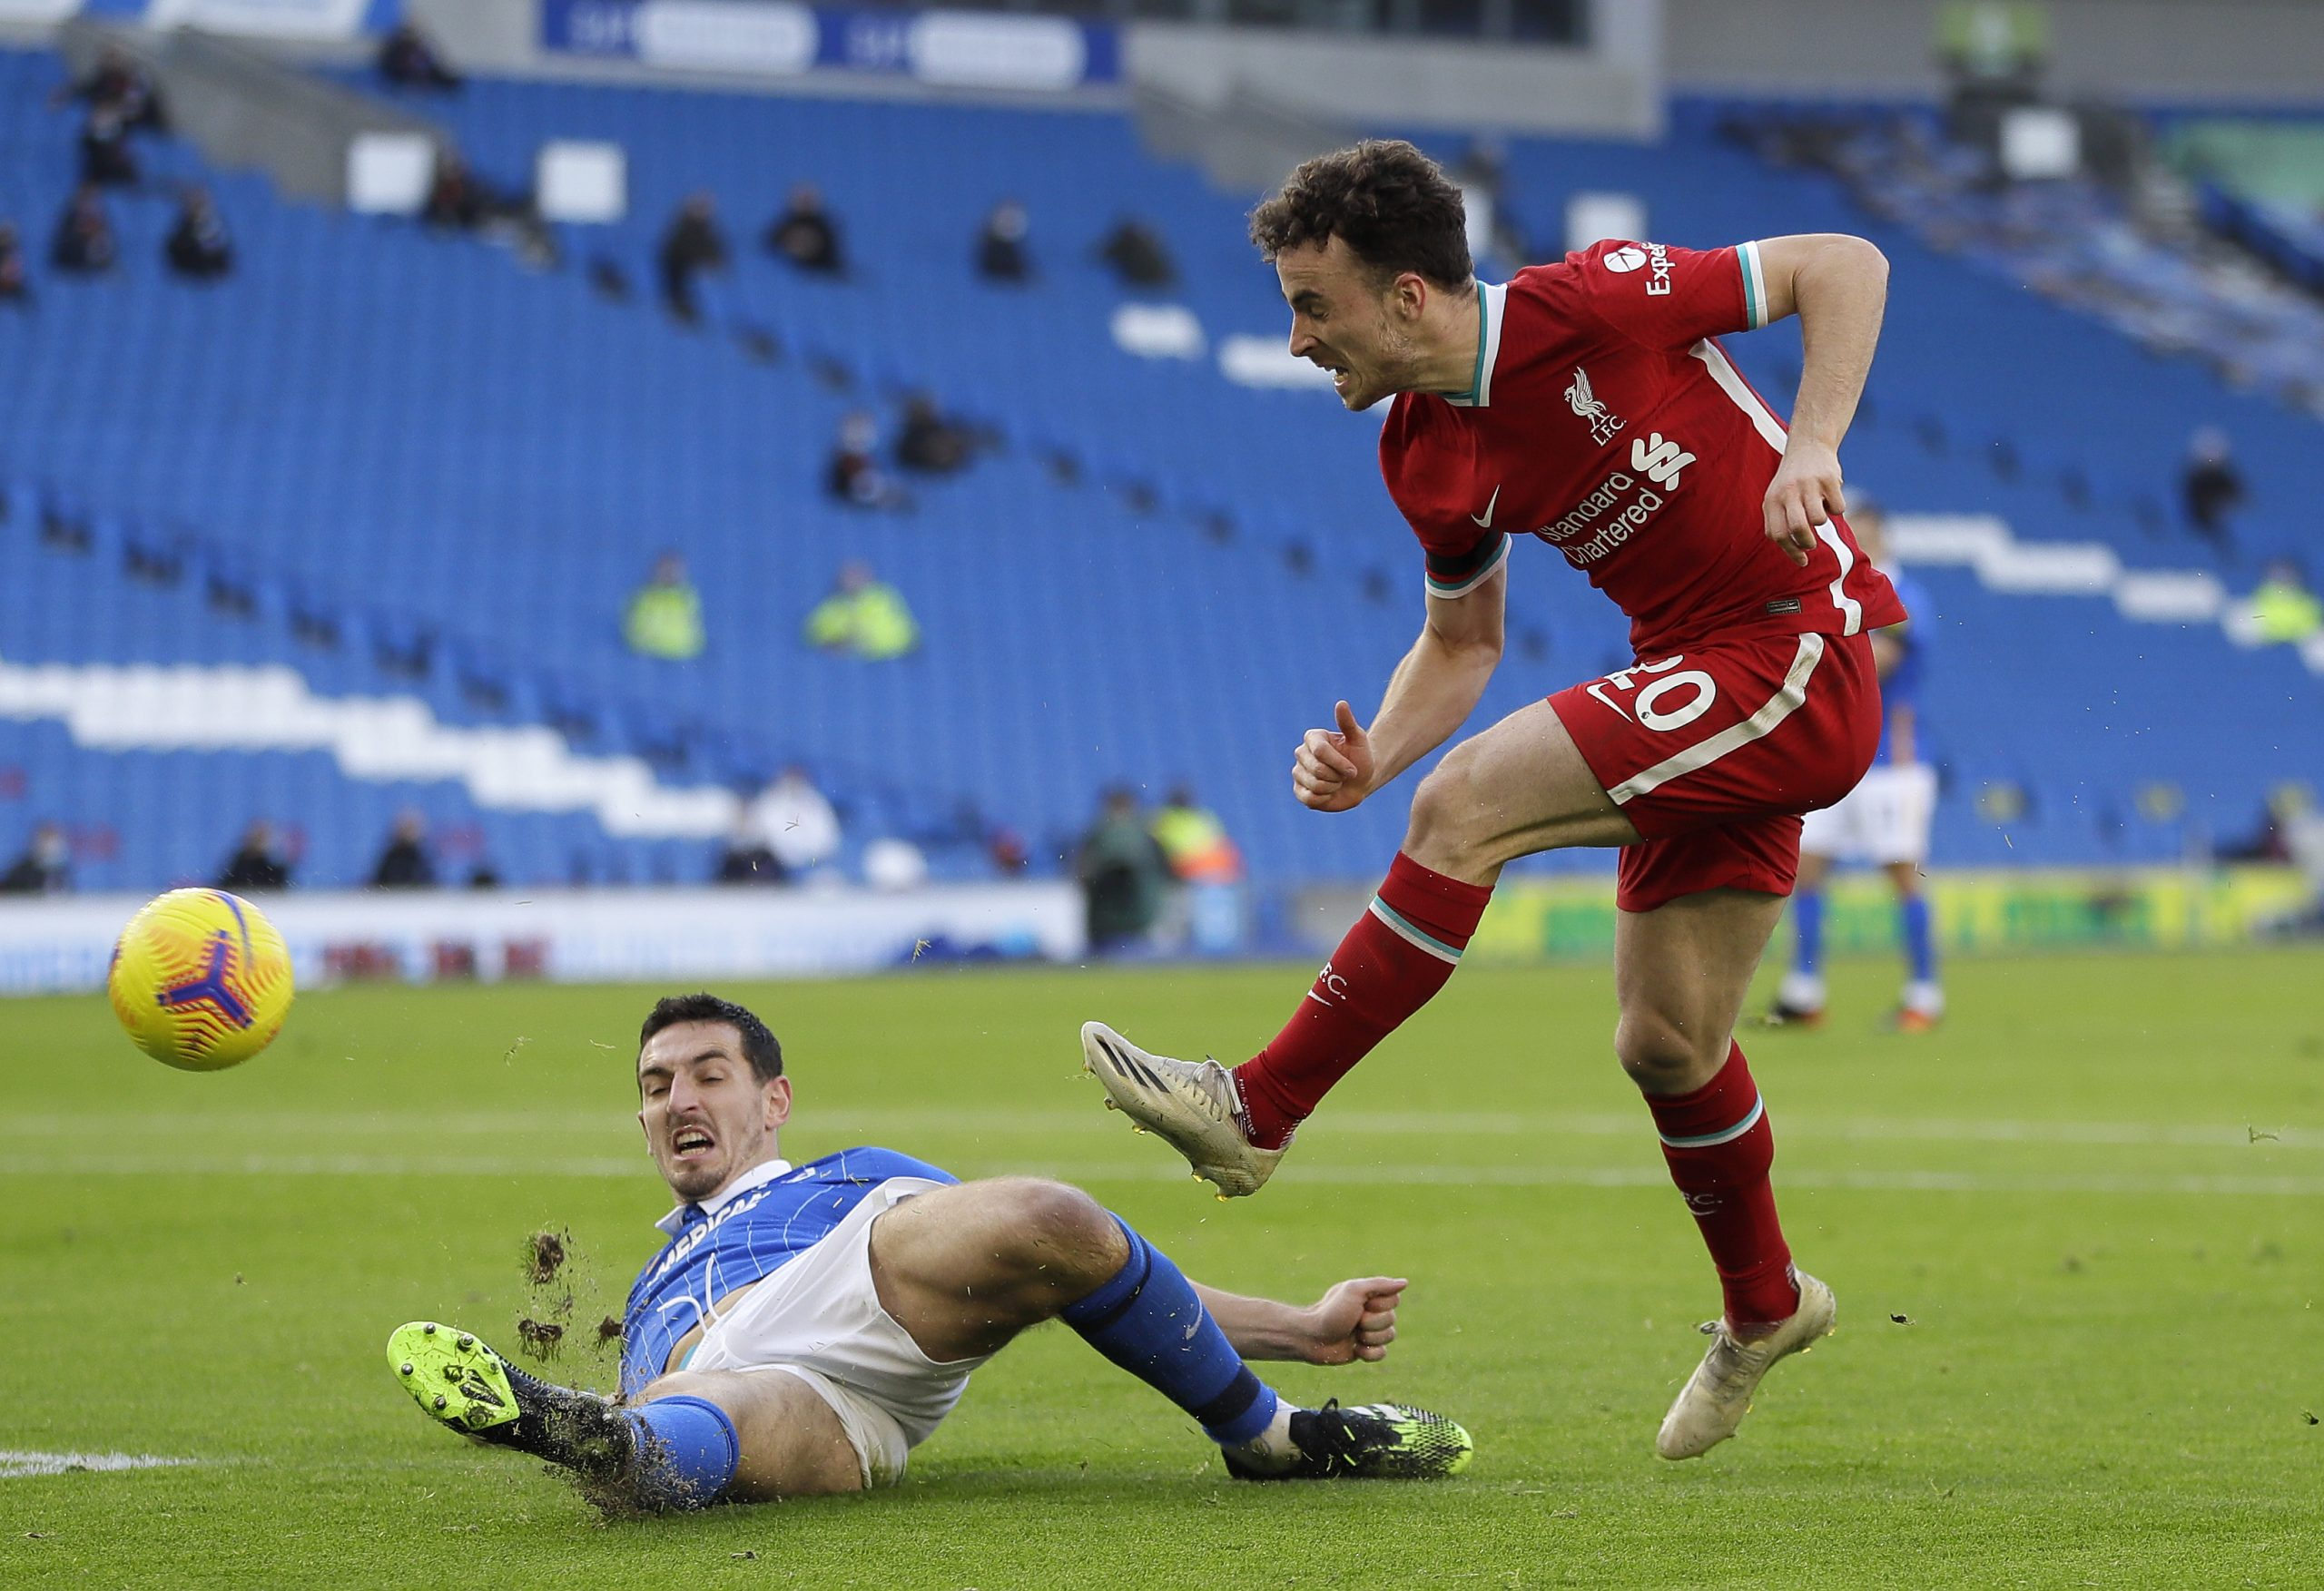 Diogo Jota shoots to score against Brighton and Hove Albion in Liverpool's 1-1 draw at the Amex. (GETTY Images)